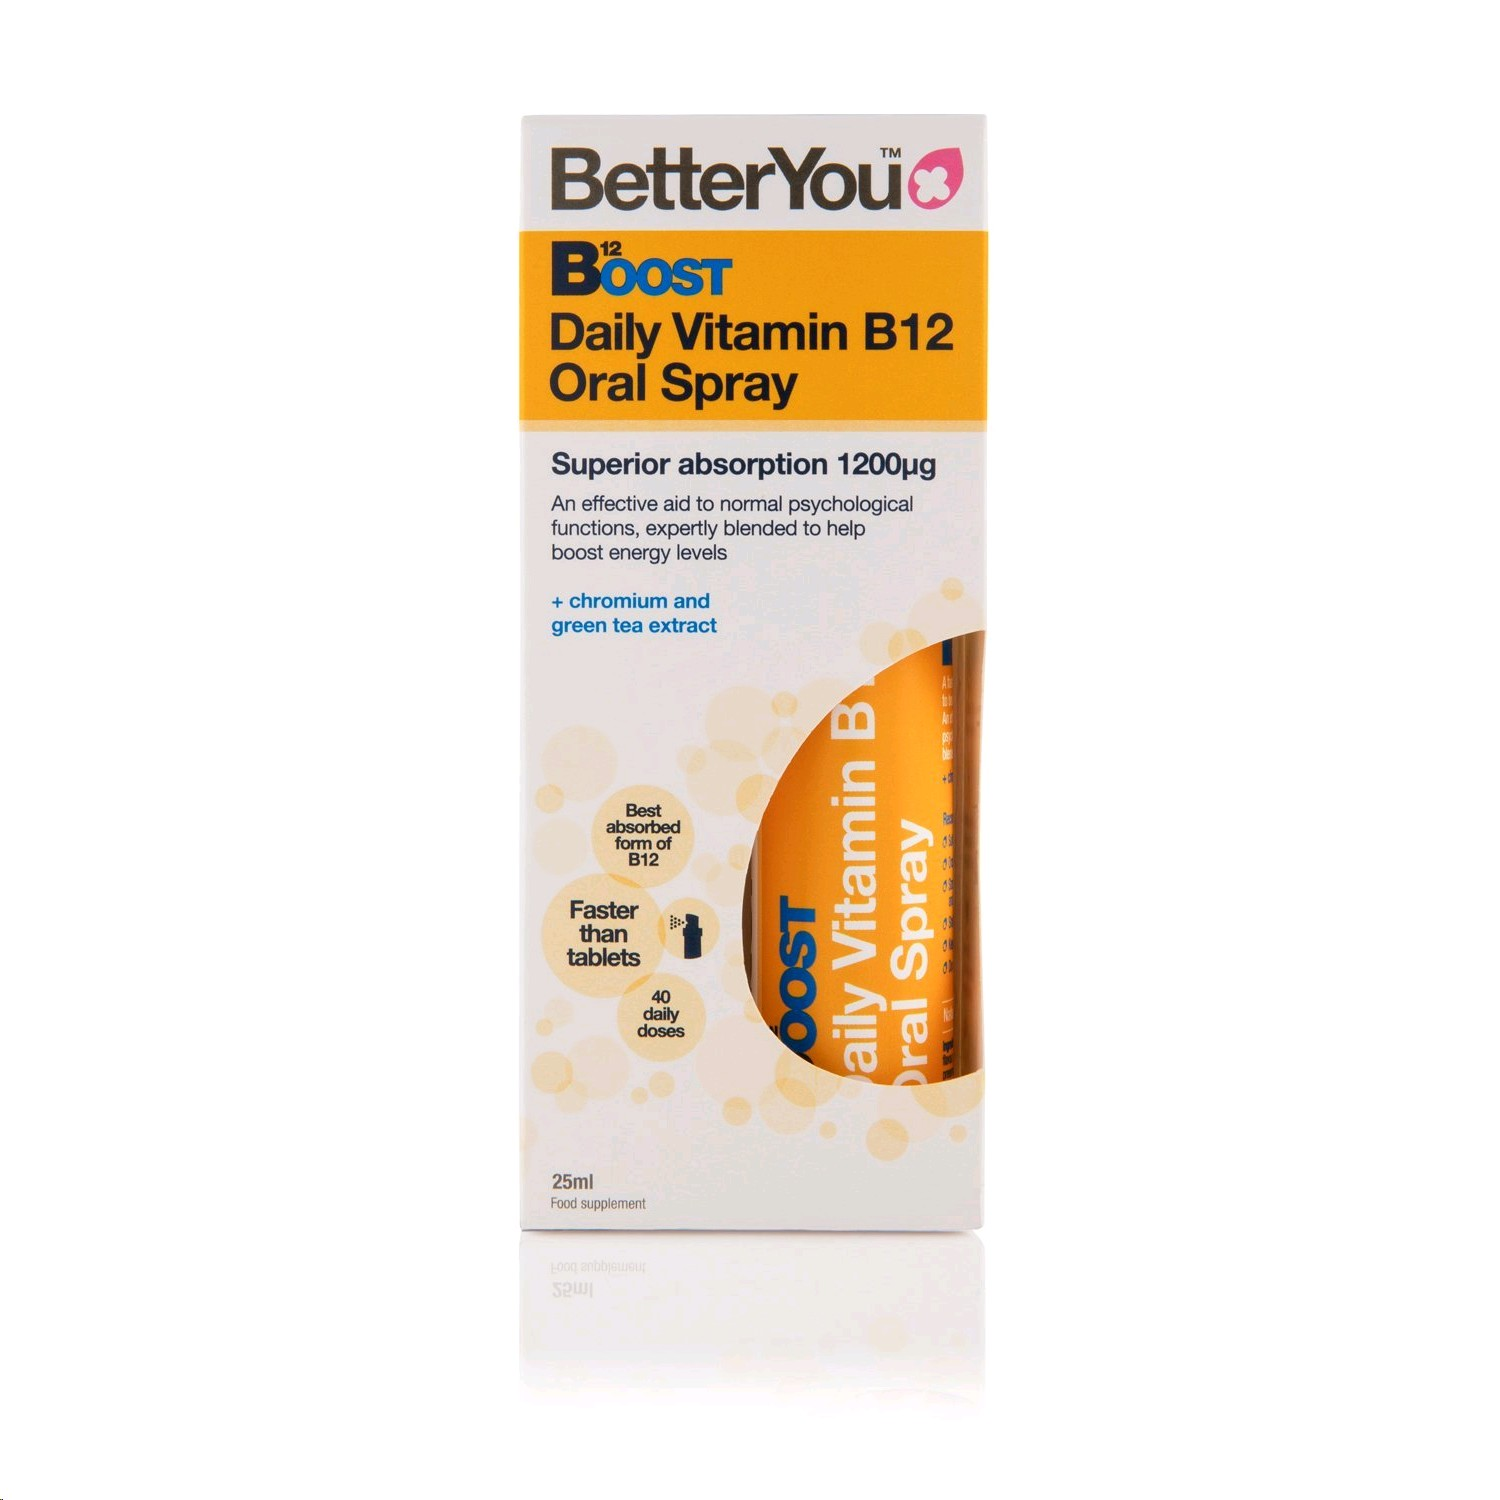 BETTERYOU VITAMINA B12 BOOST SPRAY 15ML